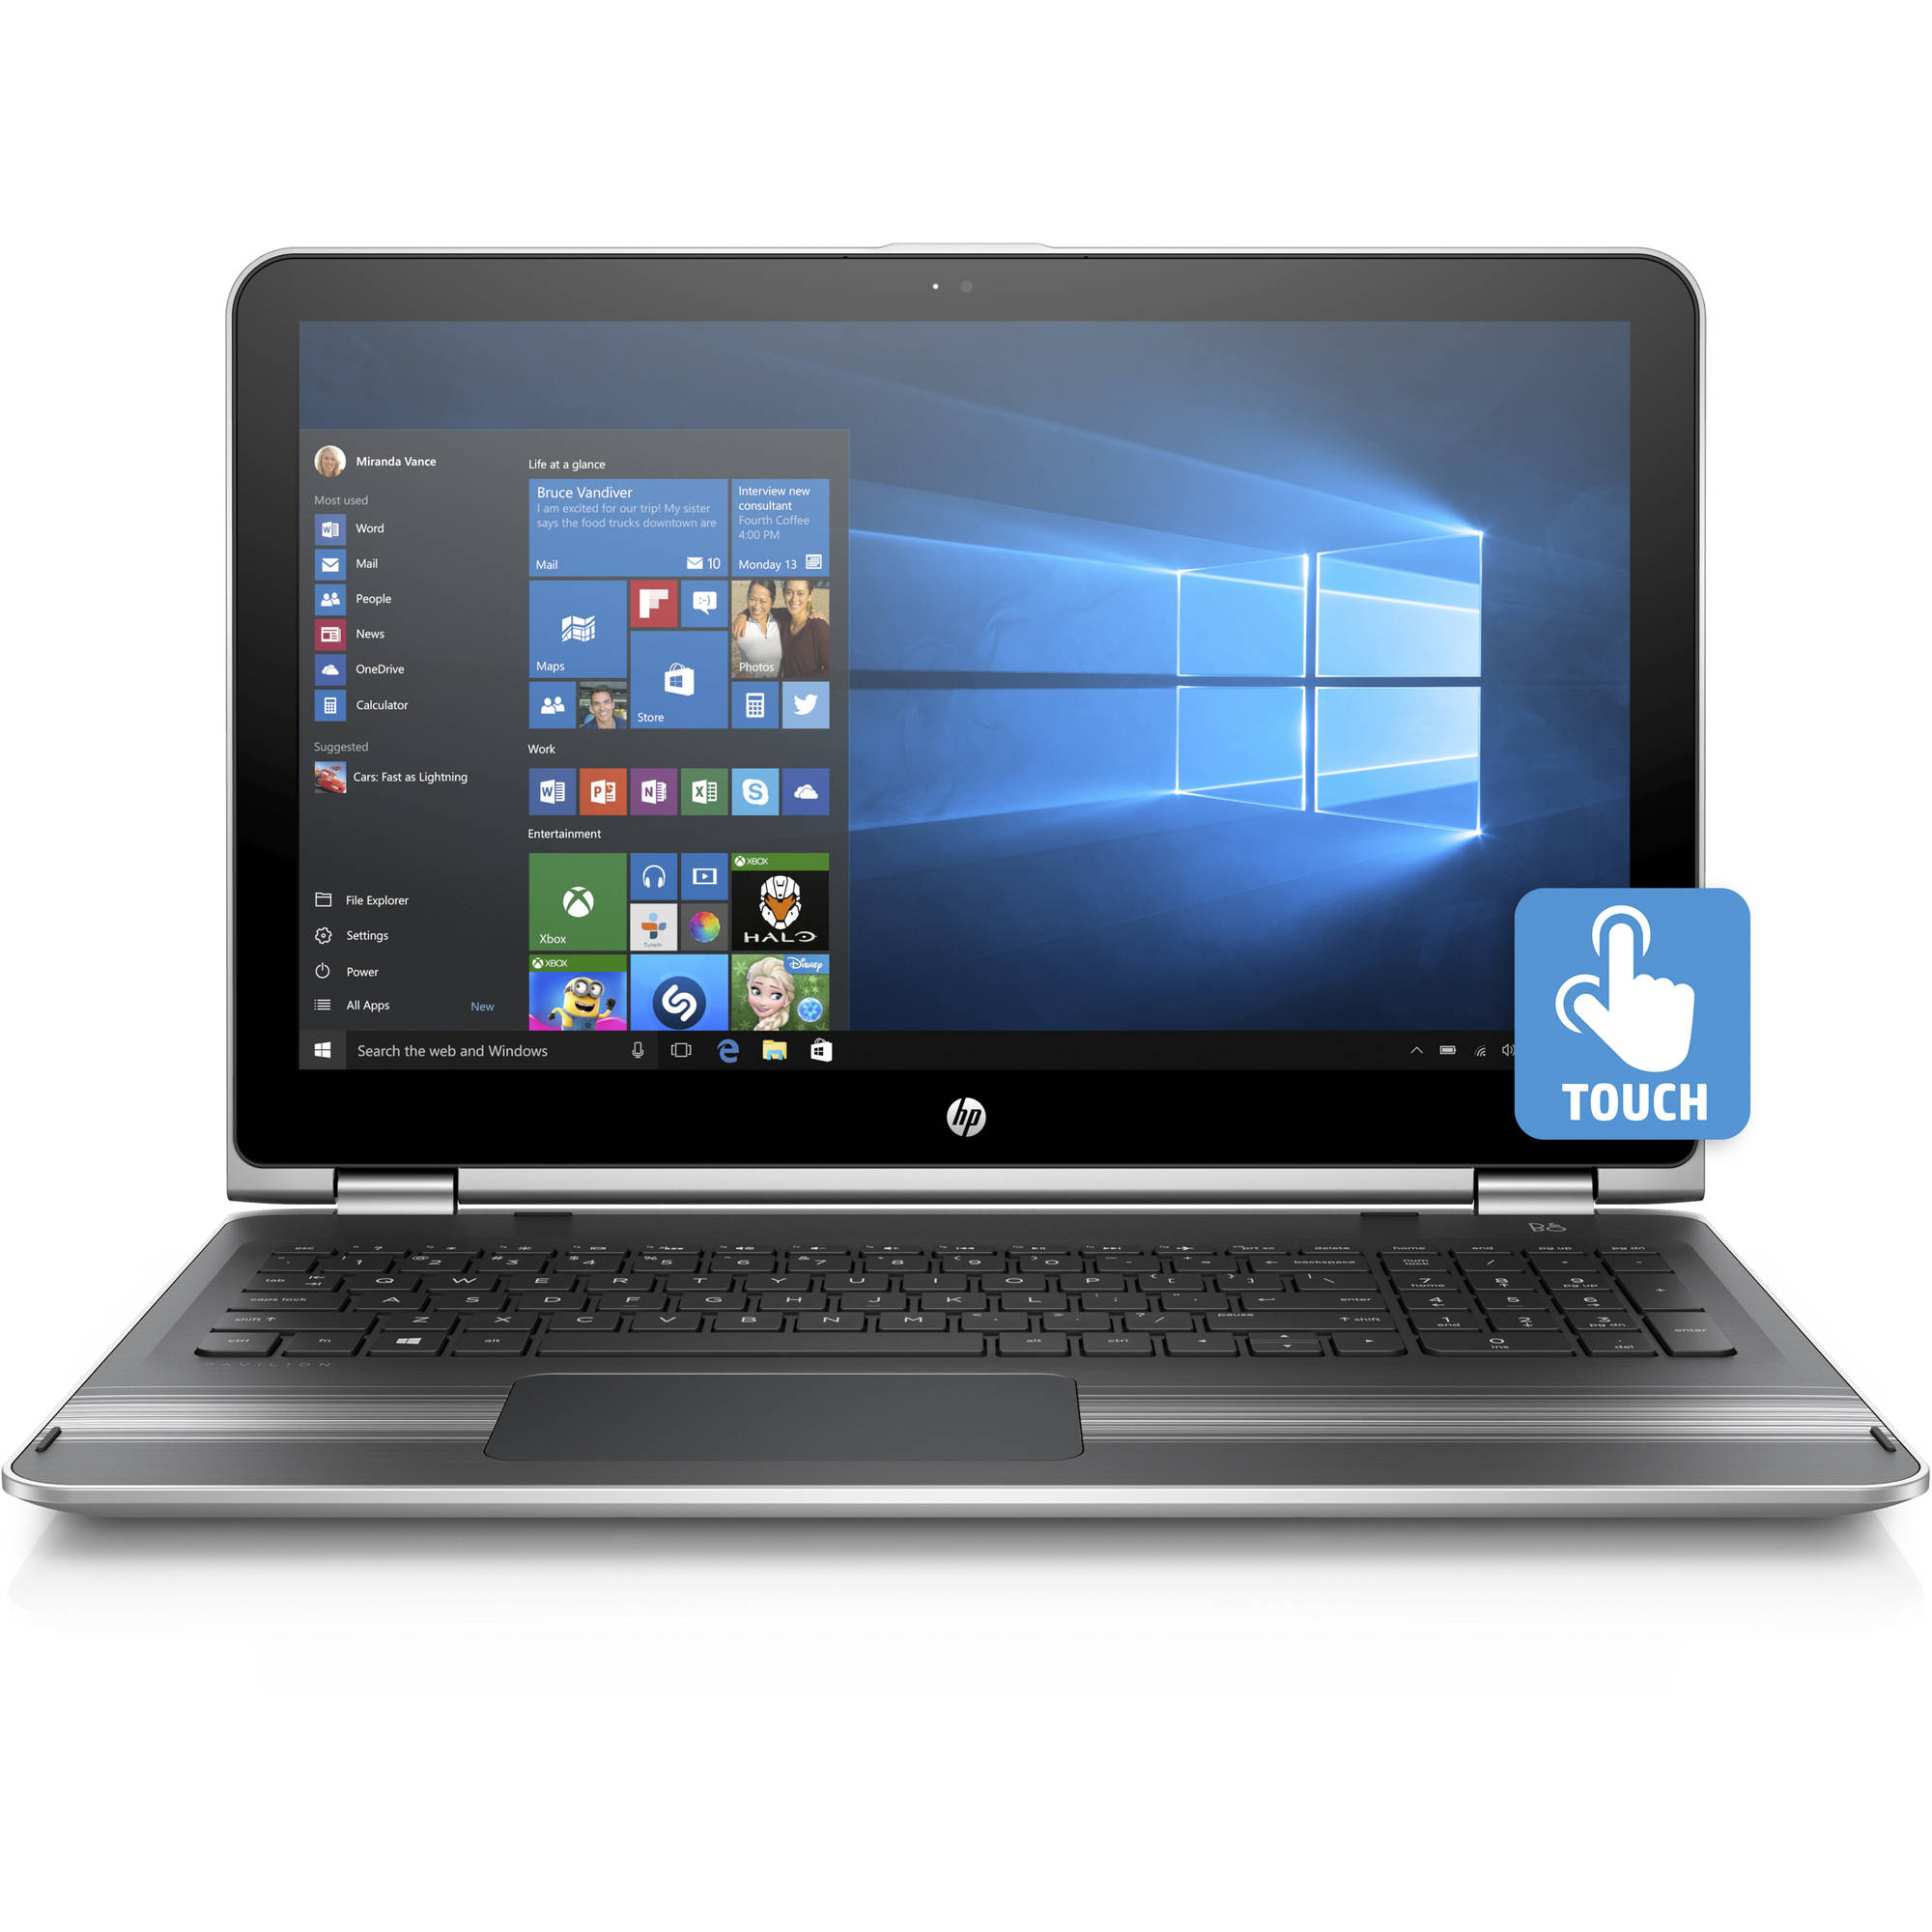 "HP Pavilion 15-bk020wm X360 15.6"" Laptop, Touch Screen, 2 in 1, Windows 10,  Intel Core i5-6200U Processor, 8GB Memory, 1TB Hard Drive, Natural Silver"